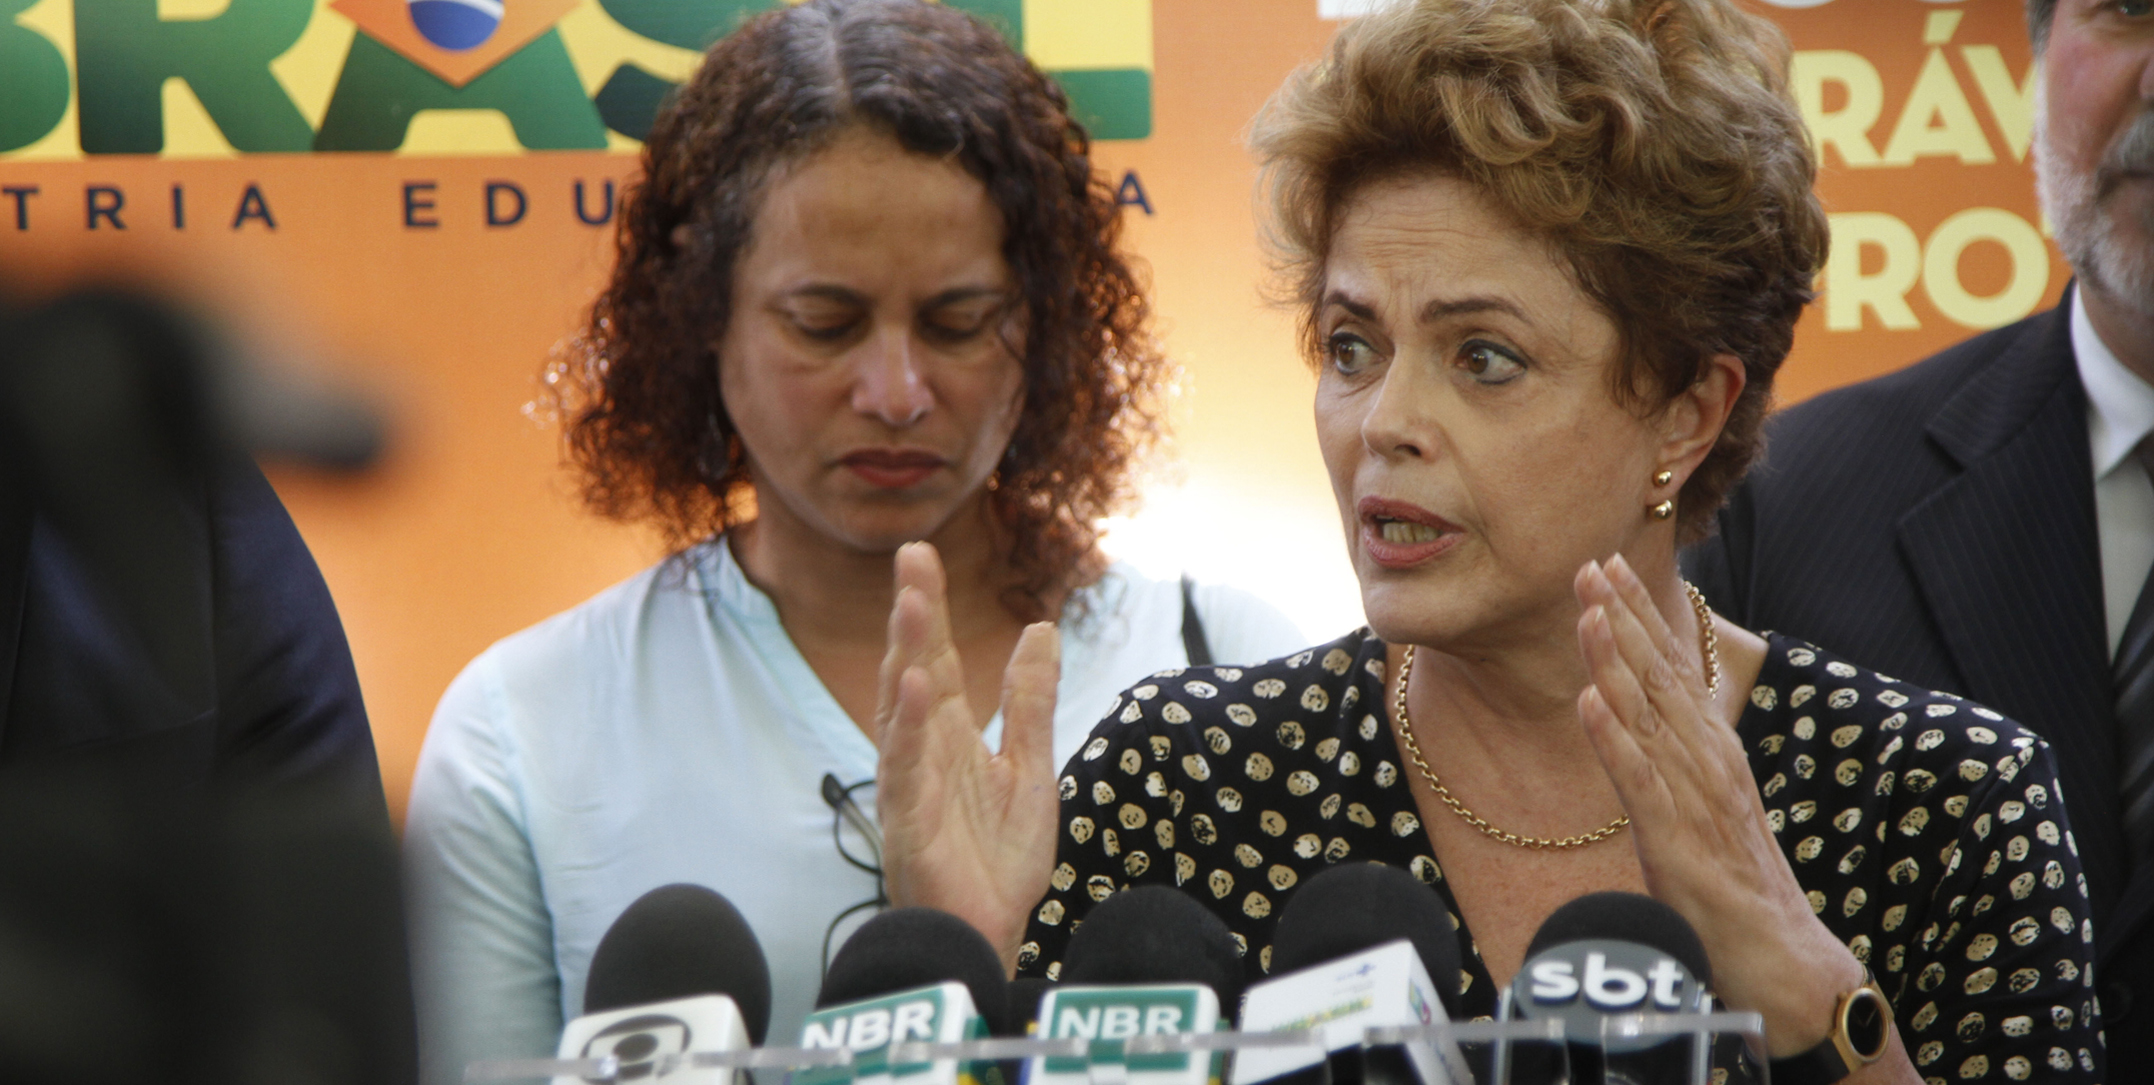 Brazilian President Dilma Rousseff gives a press conference after attending a meeting with authorities and military forces to discuss measures to combat Aedes aegypti, the mosquito responsible for transmitting the virus of dengue, chikungunya and zika to humans, in Recife, northeastern Brazil, on December 5, 2015. Zika virus is connected to cases of microcephaly in 16 Brazilian states. Photo: Ricardo B. Labastier/JC Imagem/Estadao Conteudo. (Agencia Estado via AP Images)